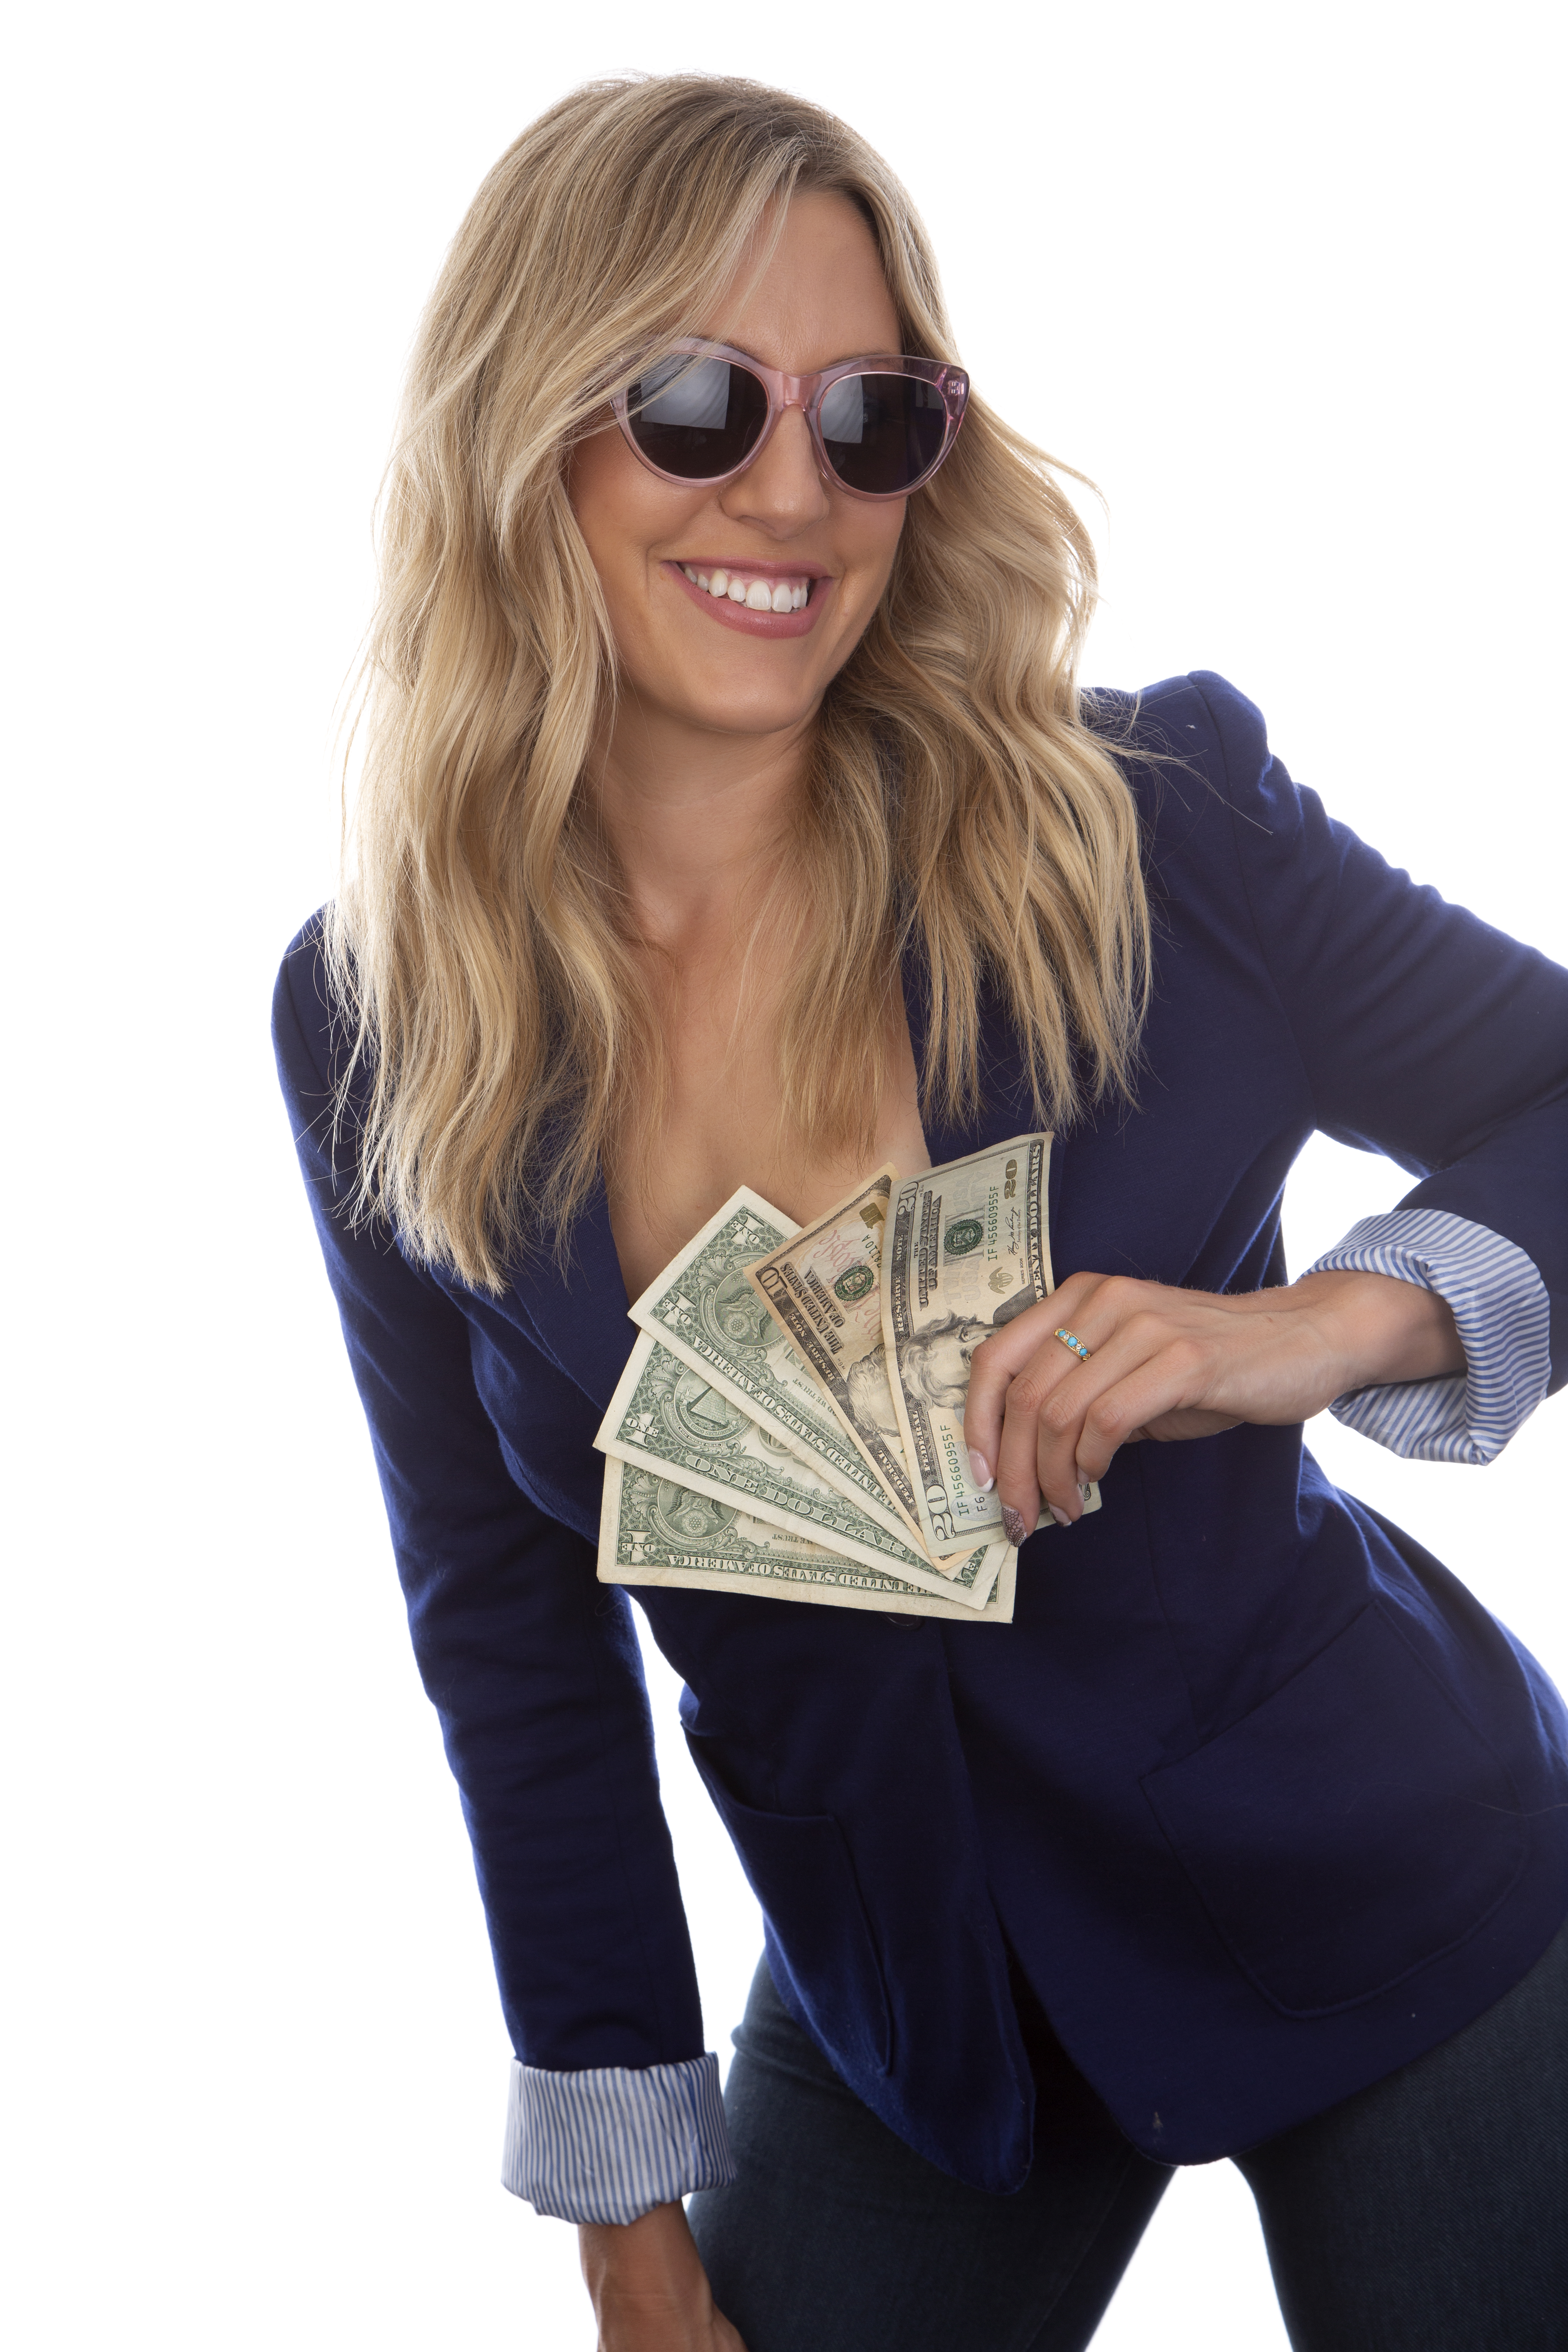 blonde girl wearing sunglasses holding money